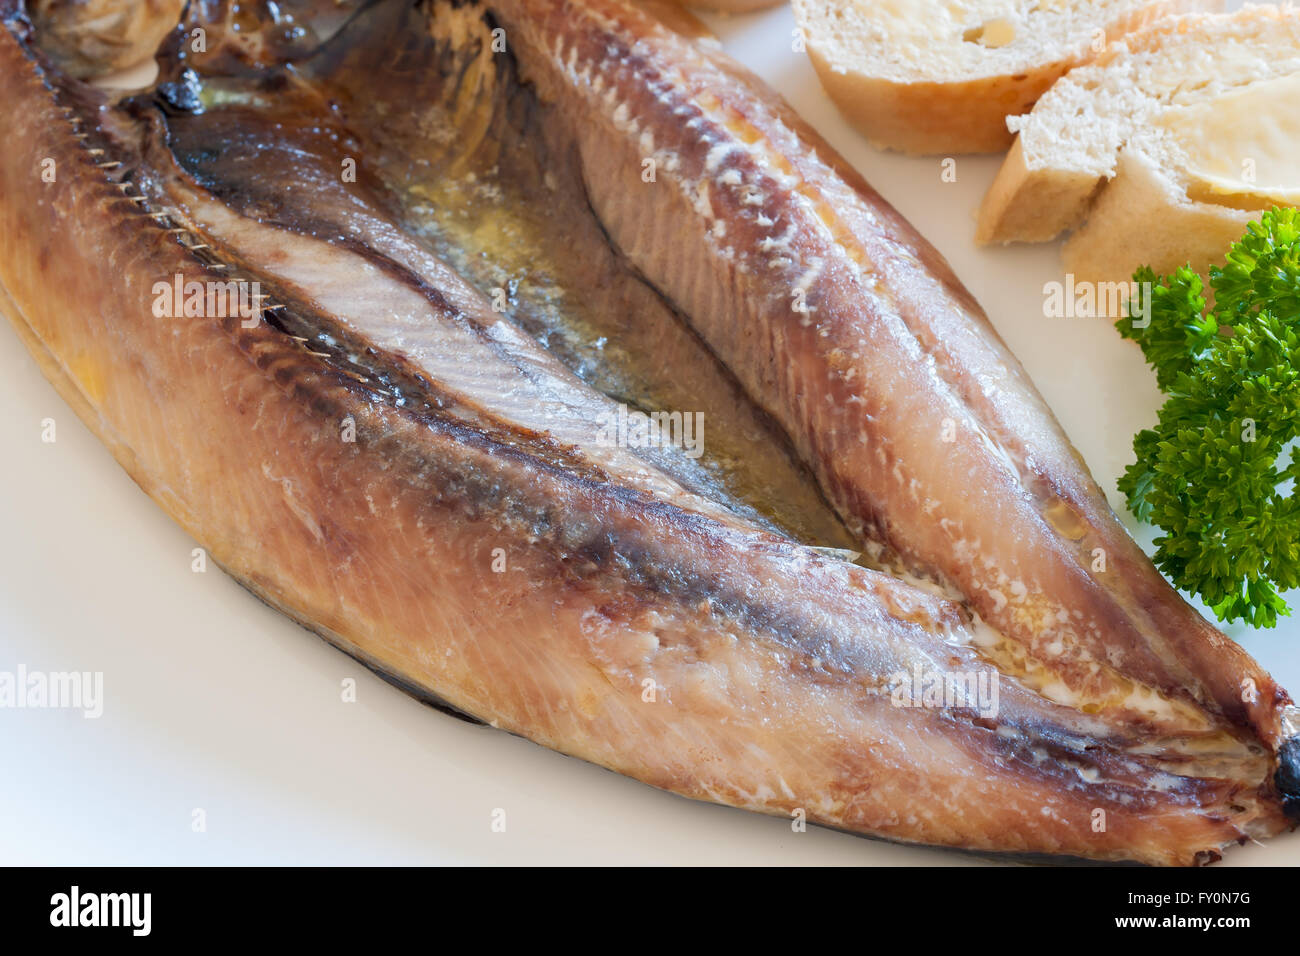 Manx Kippers or skeddan jiarg naturally smoked herrings produced in the Isle of Man - Stock Image